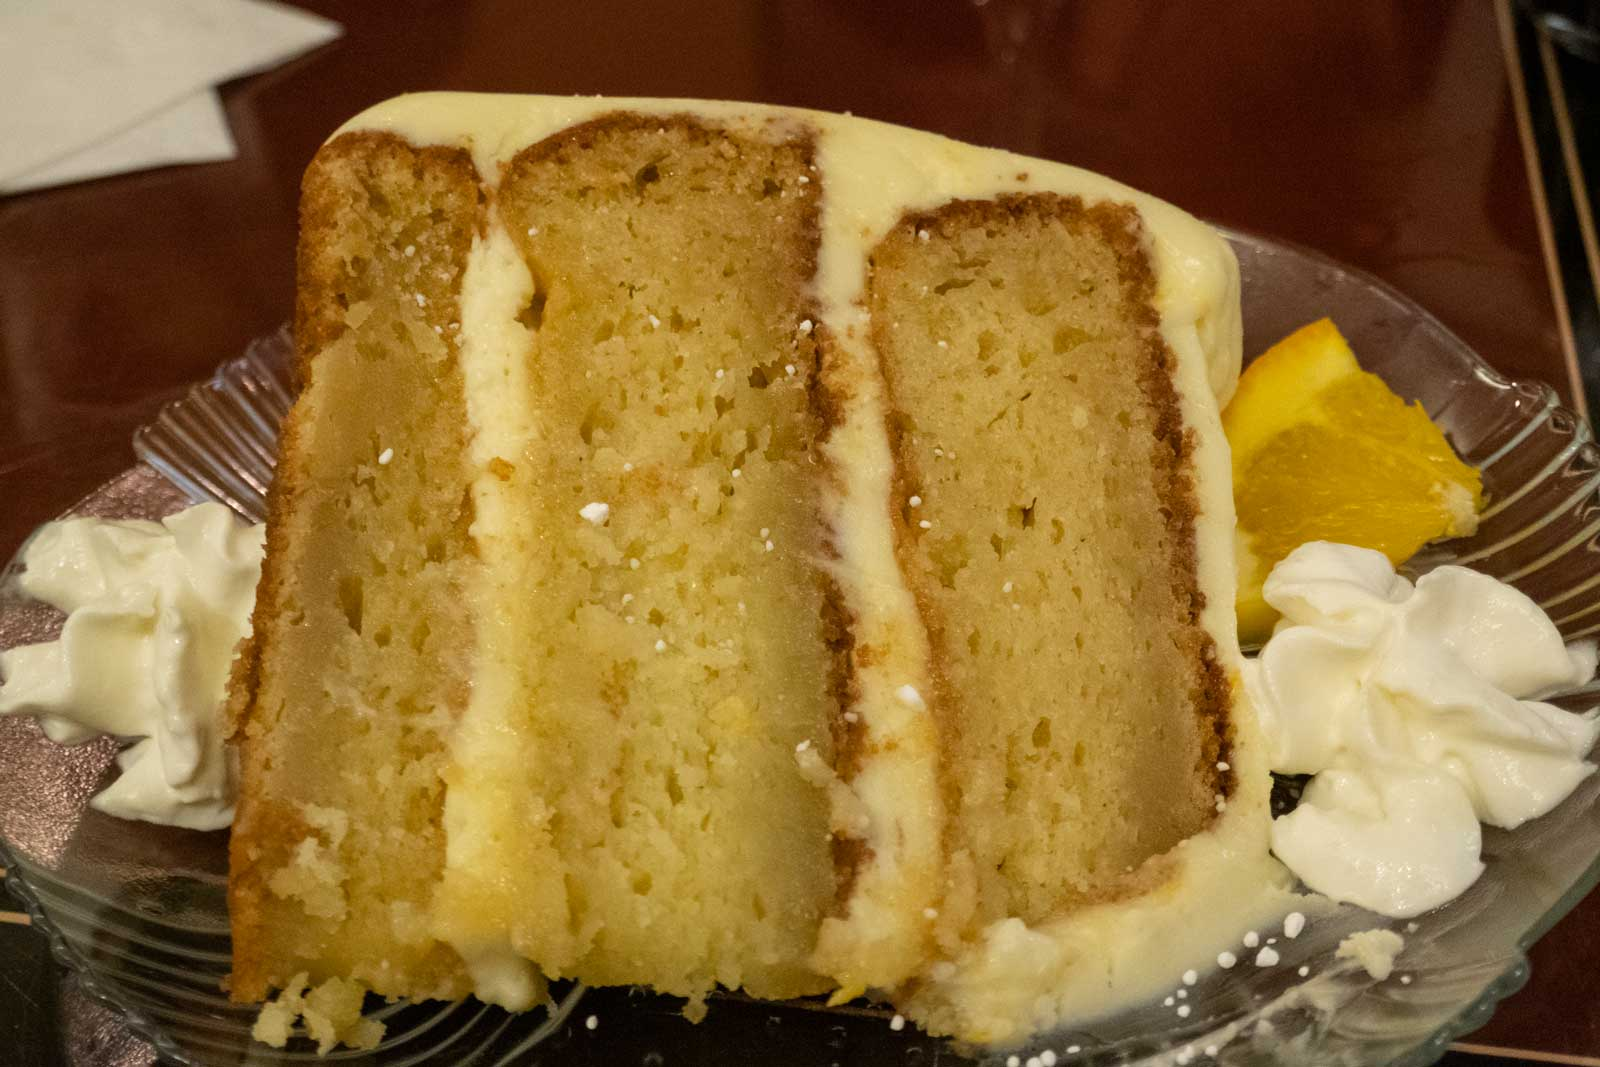 Orange Dream Cake at Spagna's Italian Restaurant Marietta Ohio